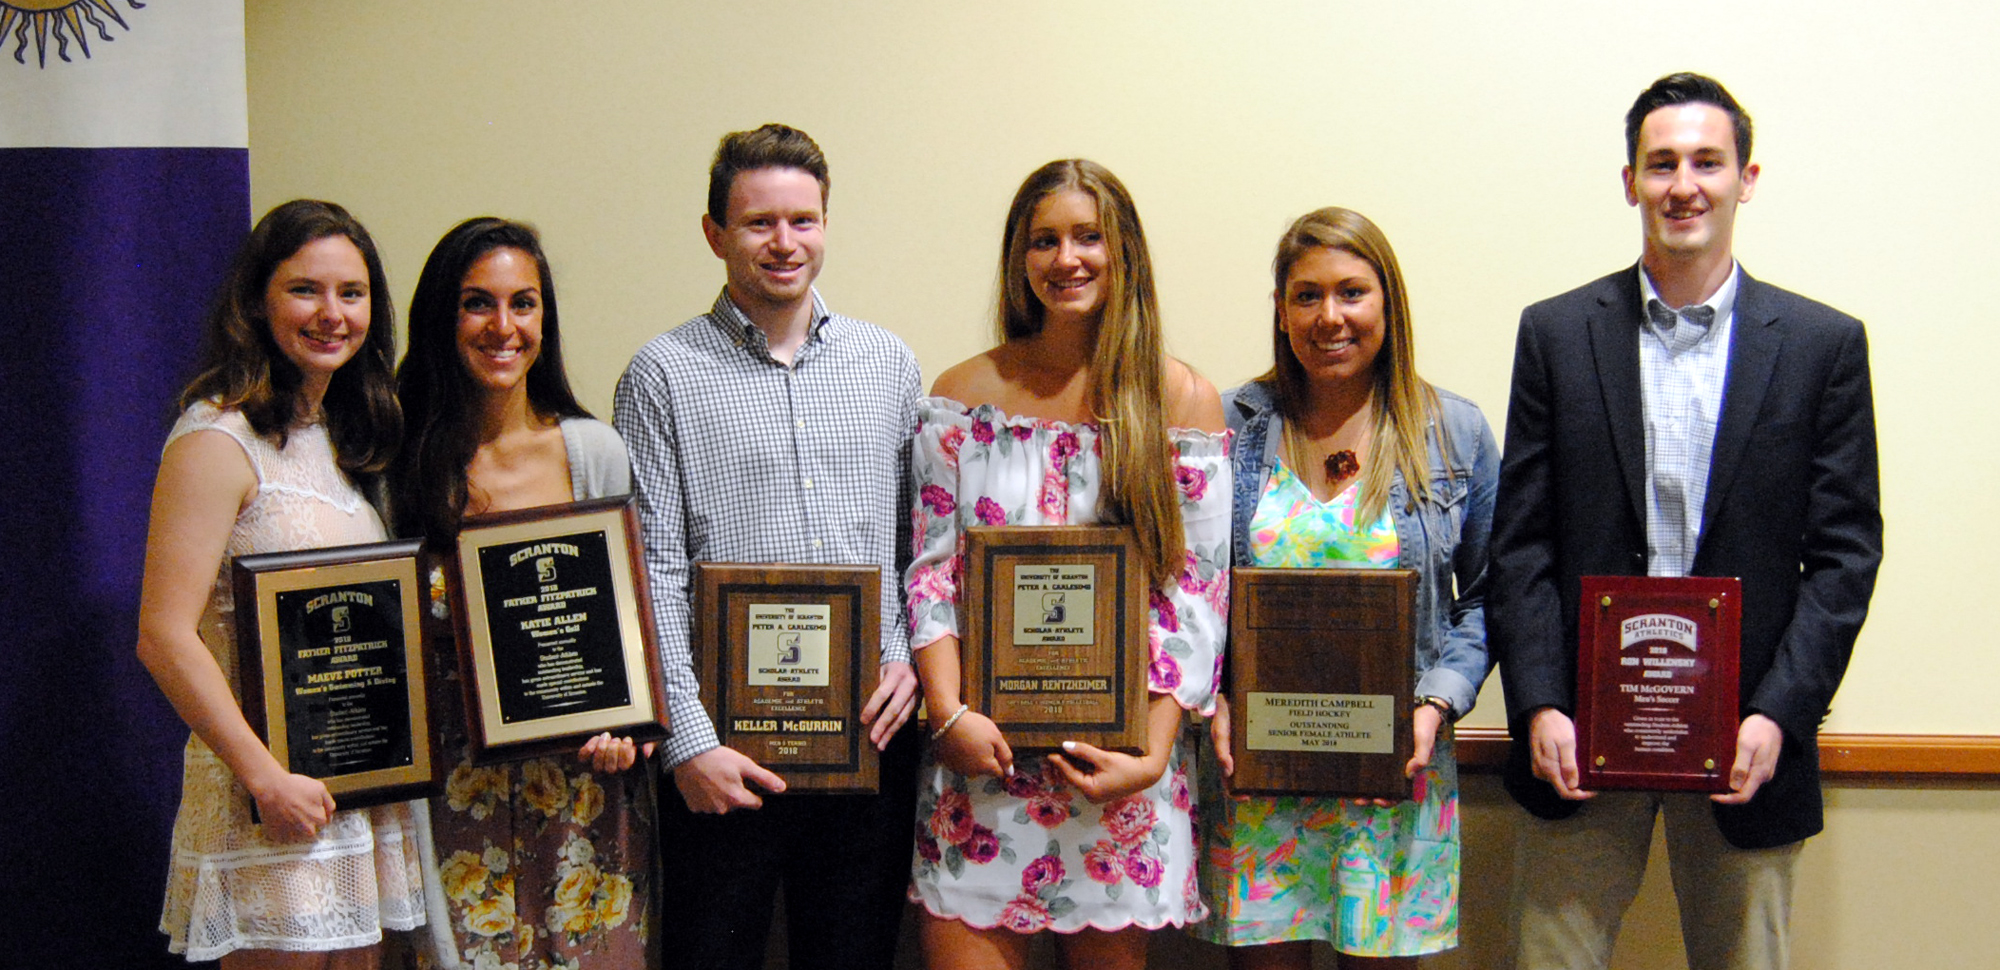 Eight student-athletes received special awards at the Senior Student-Athlete Brunch on Saturday. From left, Maeve Potter, women's swimming & diving, Fitzpatrick Award; Katie Allen, women's golf, Fitzpatrick Award; Keller McGurrin, men's tennis, Carlesimo Award; Morgan Rentzheimer, women's volleyball & softball, Carlesimo Award; Meredith Campbell, field hockey, O'Hara Award; and Tim McGovern, men's soccer, Willensky Award. Not pictured: Richard Endico, men's swimming & diving, Fitzpatrick Award; and Tommy Trotter, baseball, O'Hara Award.